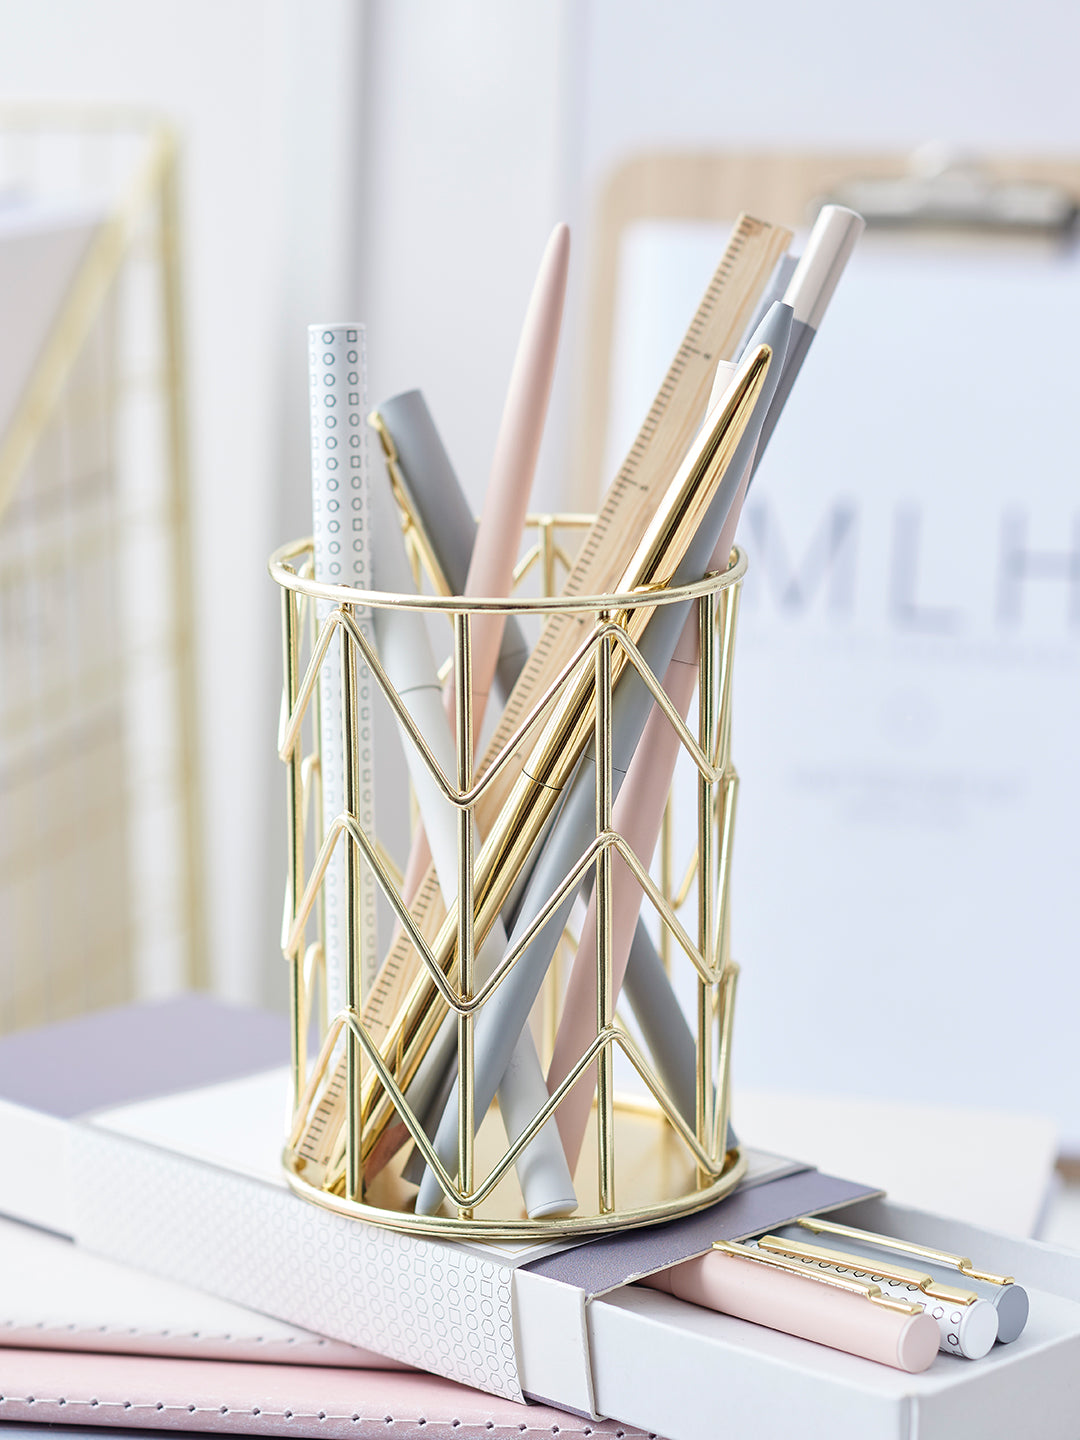 Gold Geometric Pen Pot - My Life Handmade